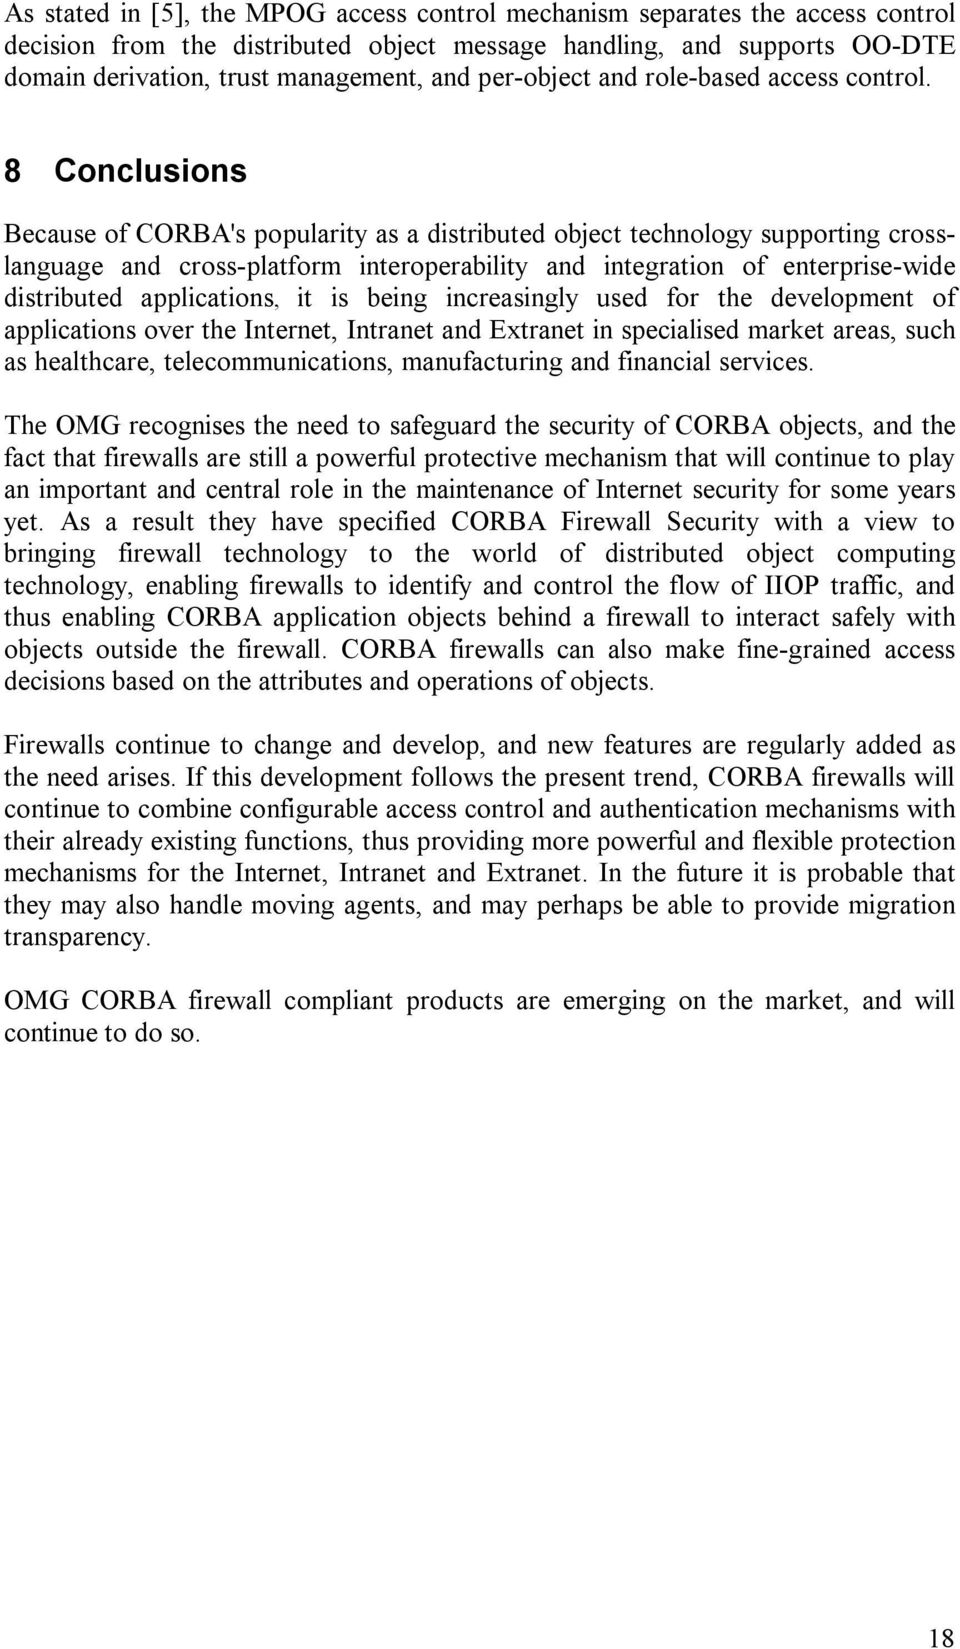 8 Conclusions Because of CORBA's popularity as a distributed object technology supporting crosslanguage and cross-platform interoperability and integration of enterprise-wide distributed